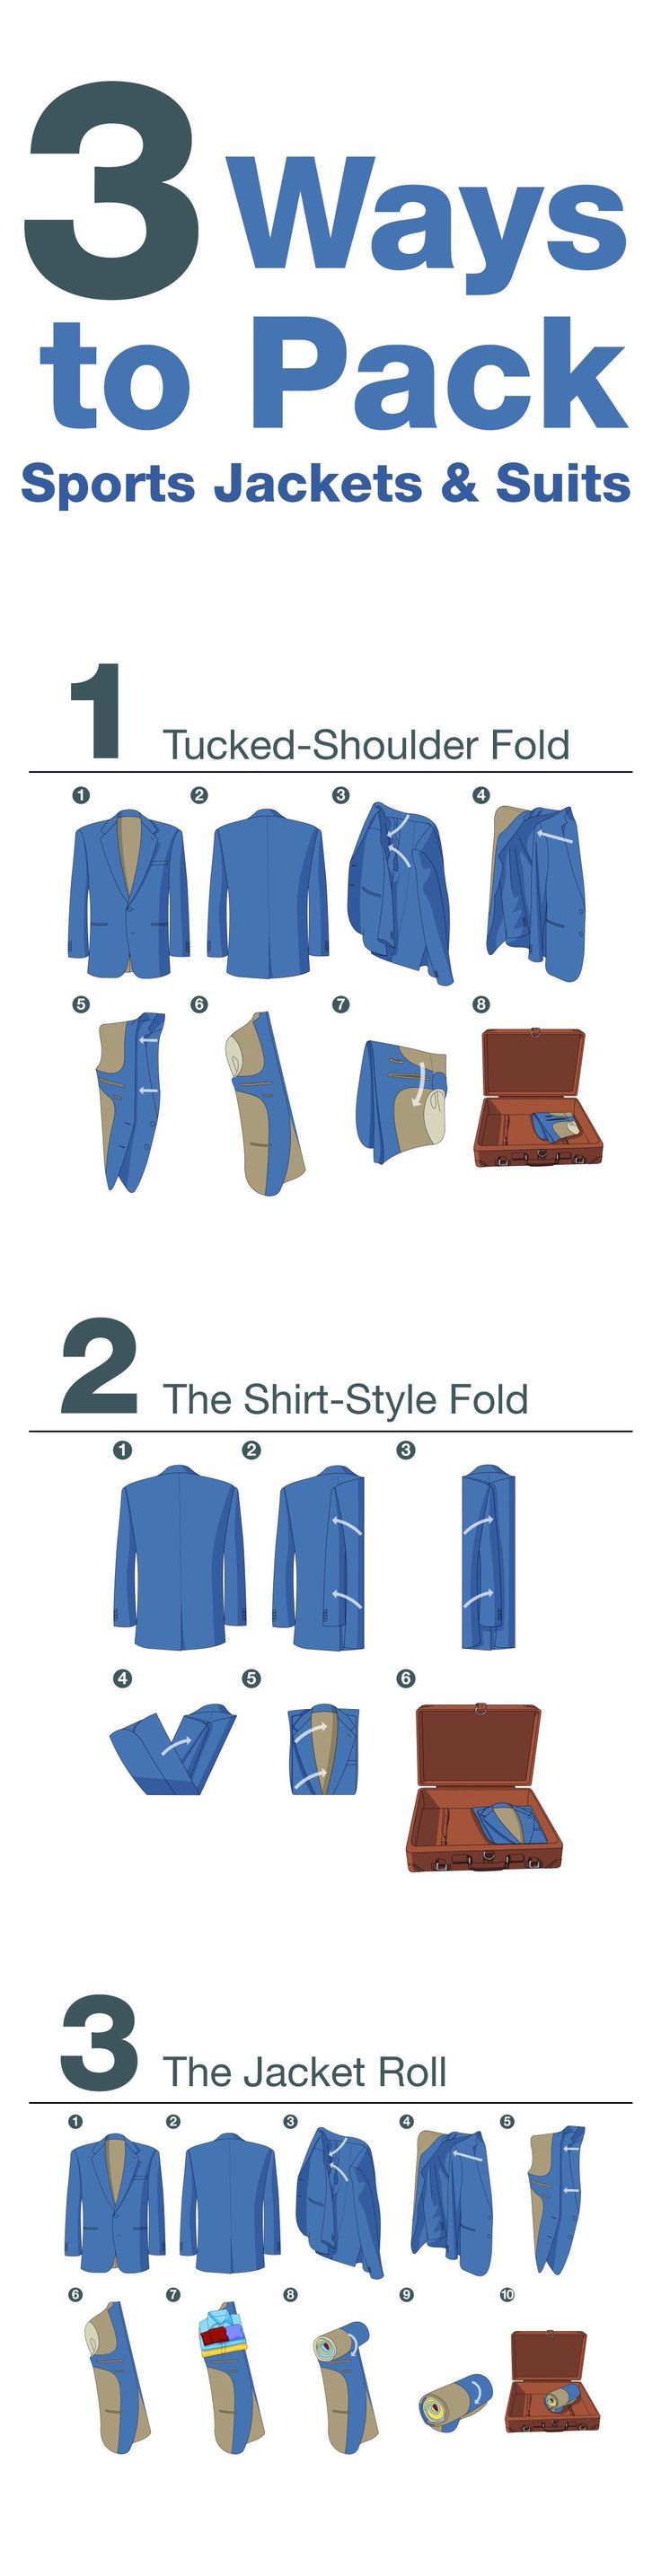 3 ways to pack your lucky suit for next conference